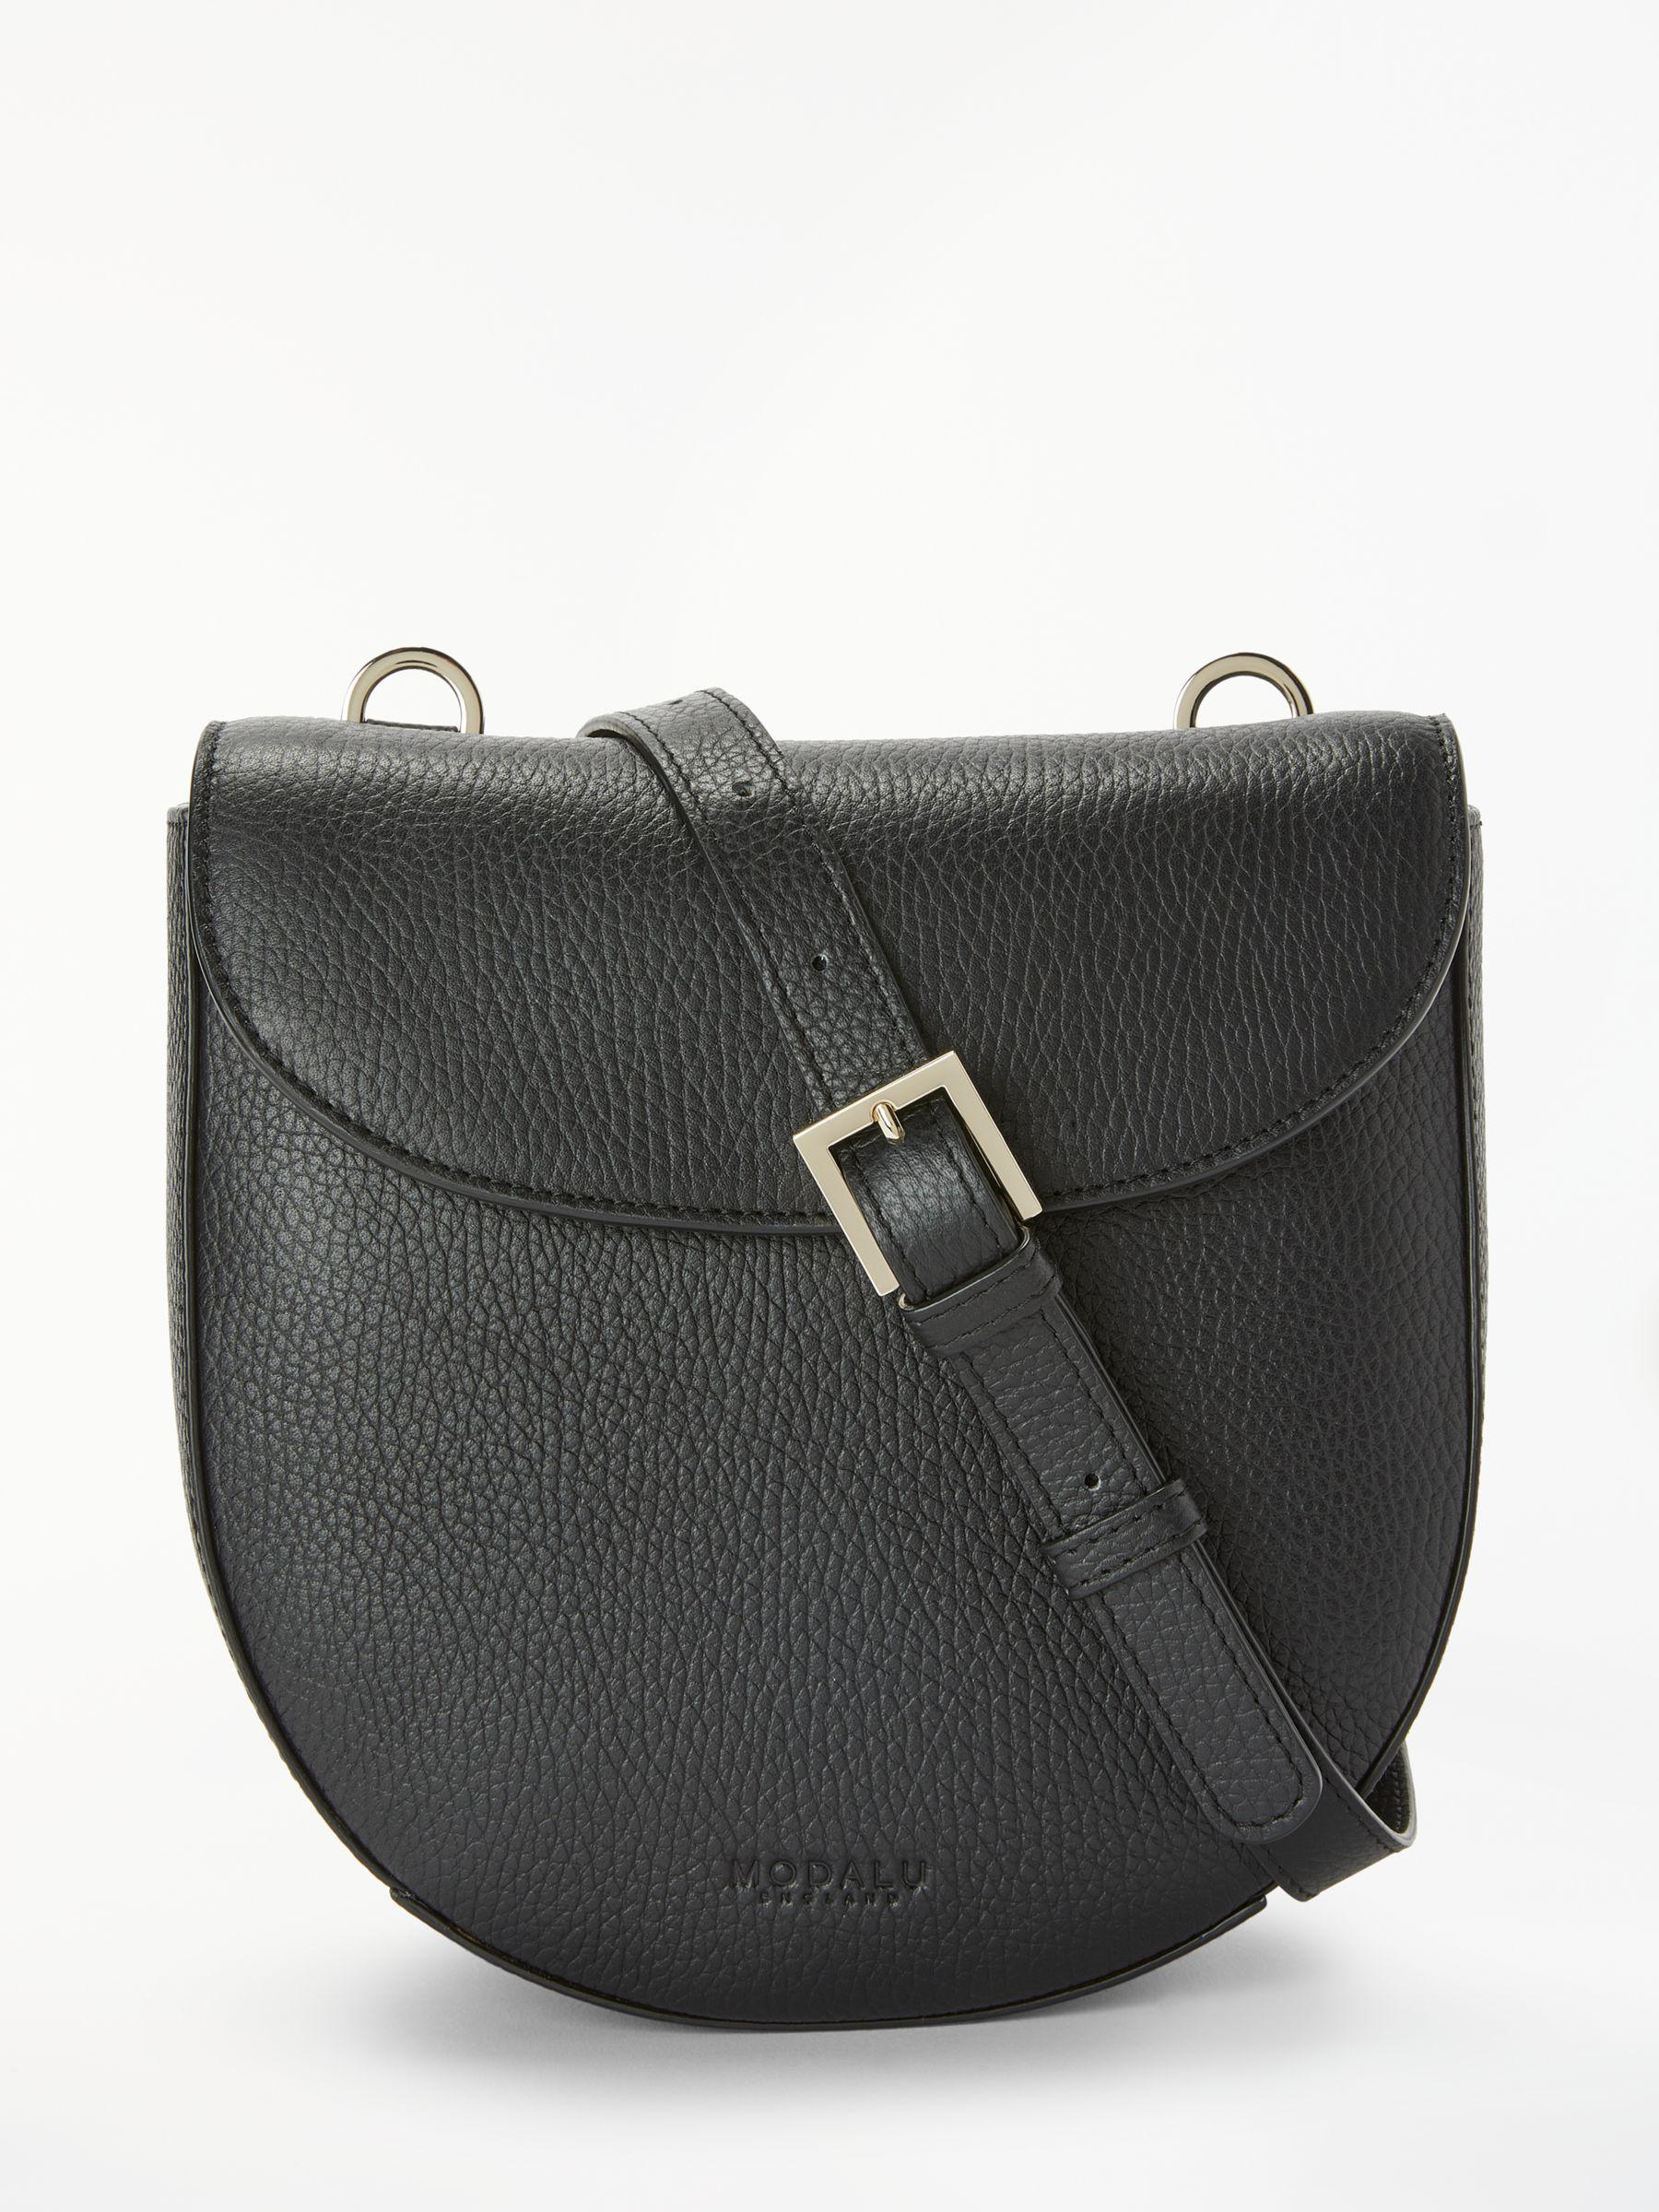 527e5956efc6 Modalu - Black Sofia Leather Cross Body Bag - Lyst. View fullscreen